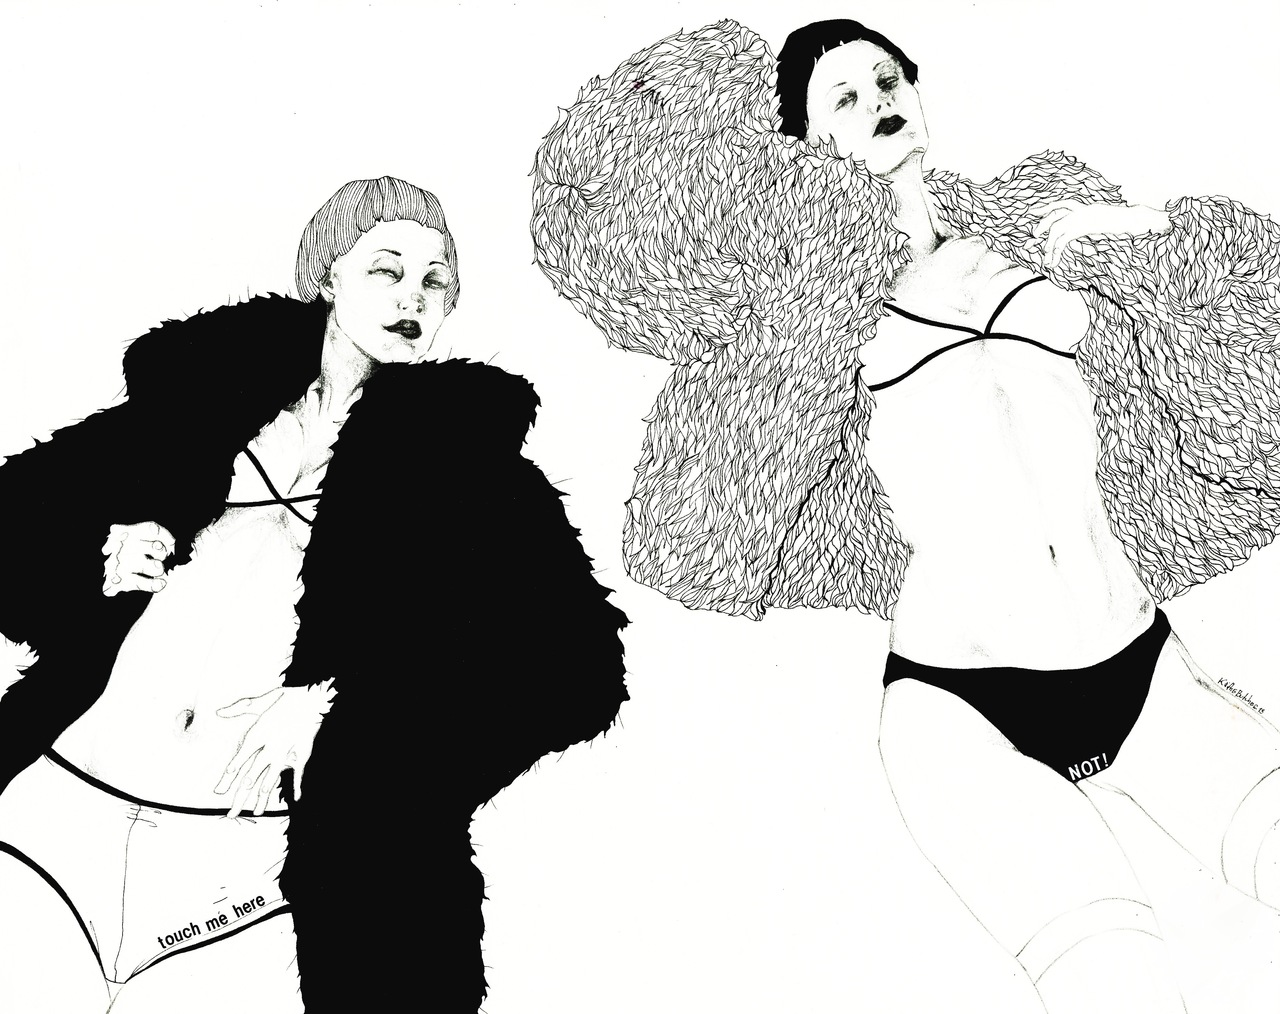 Black and White drawings from Kaethe Butcher: tumblr_mwvh7aRdyr1sj1vz2o1_1280.jpg